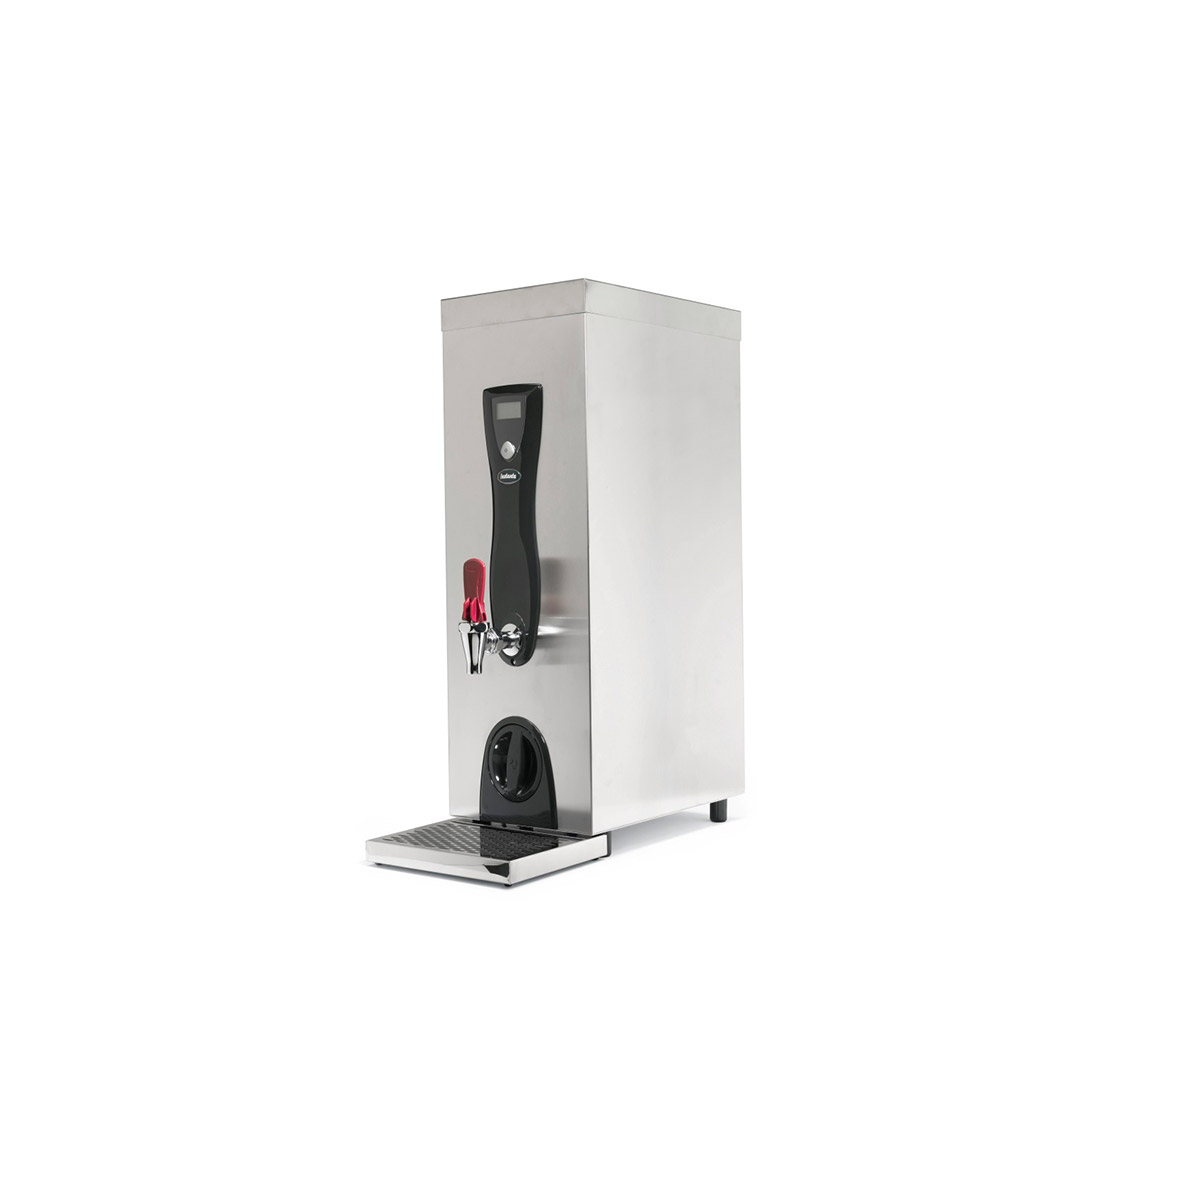 Instanta Sureflow Counter Top Water Boiler Filtered CTS19F/6 19Ltr